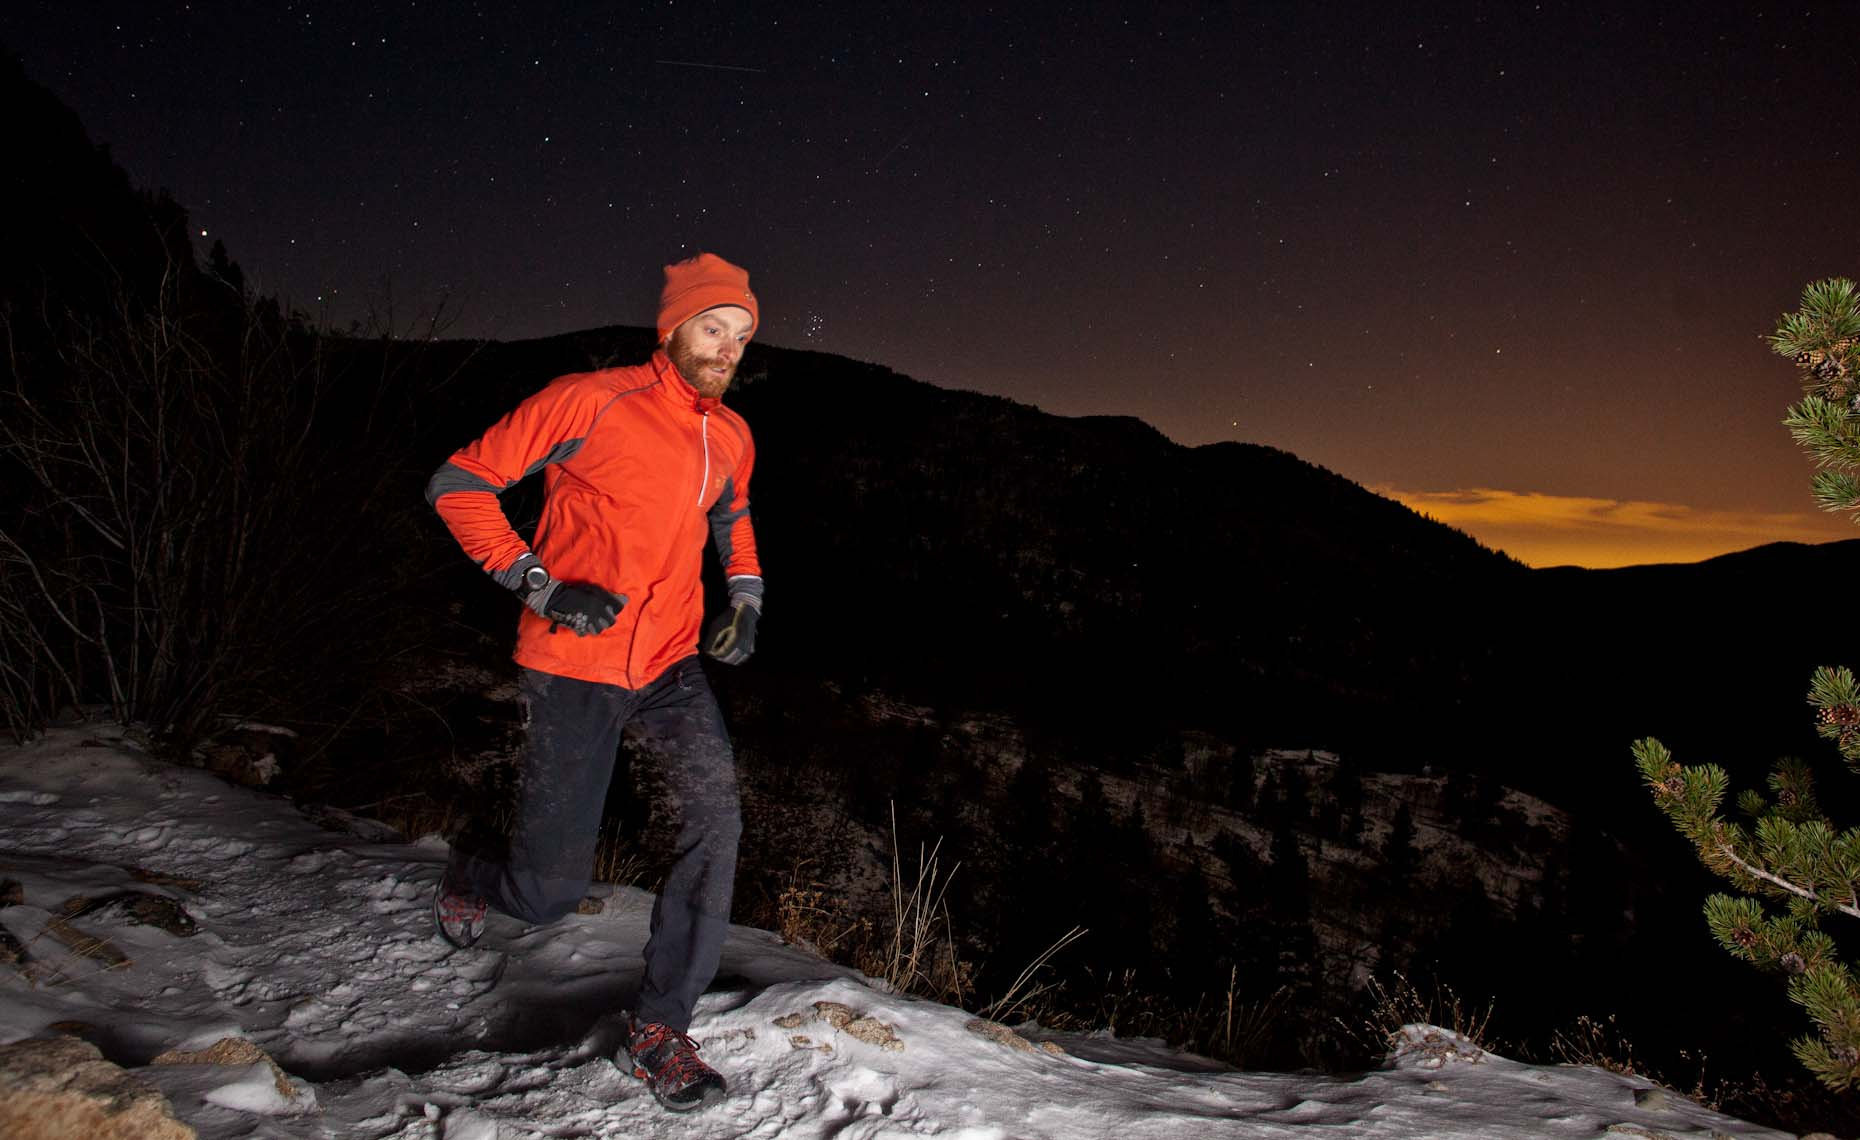 starry Geoff Roes